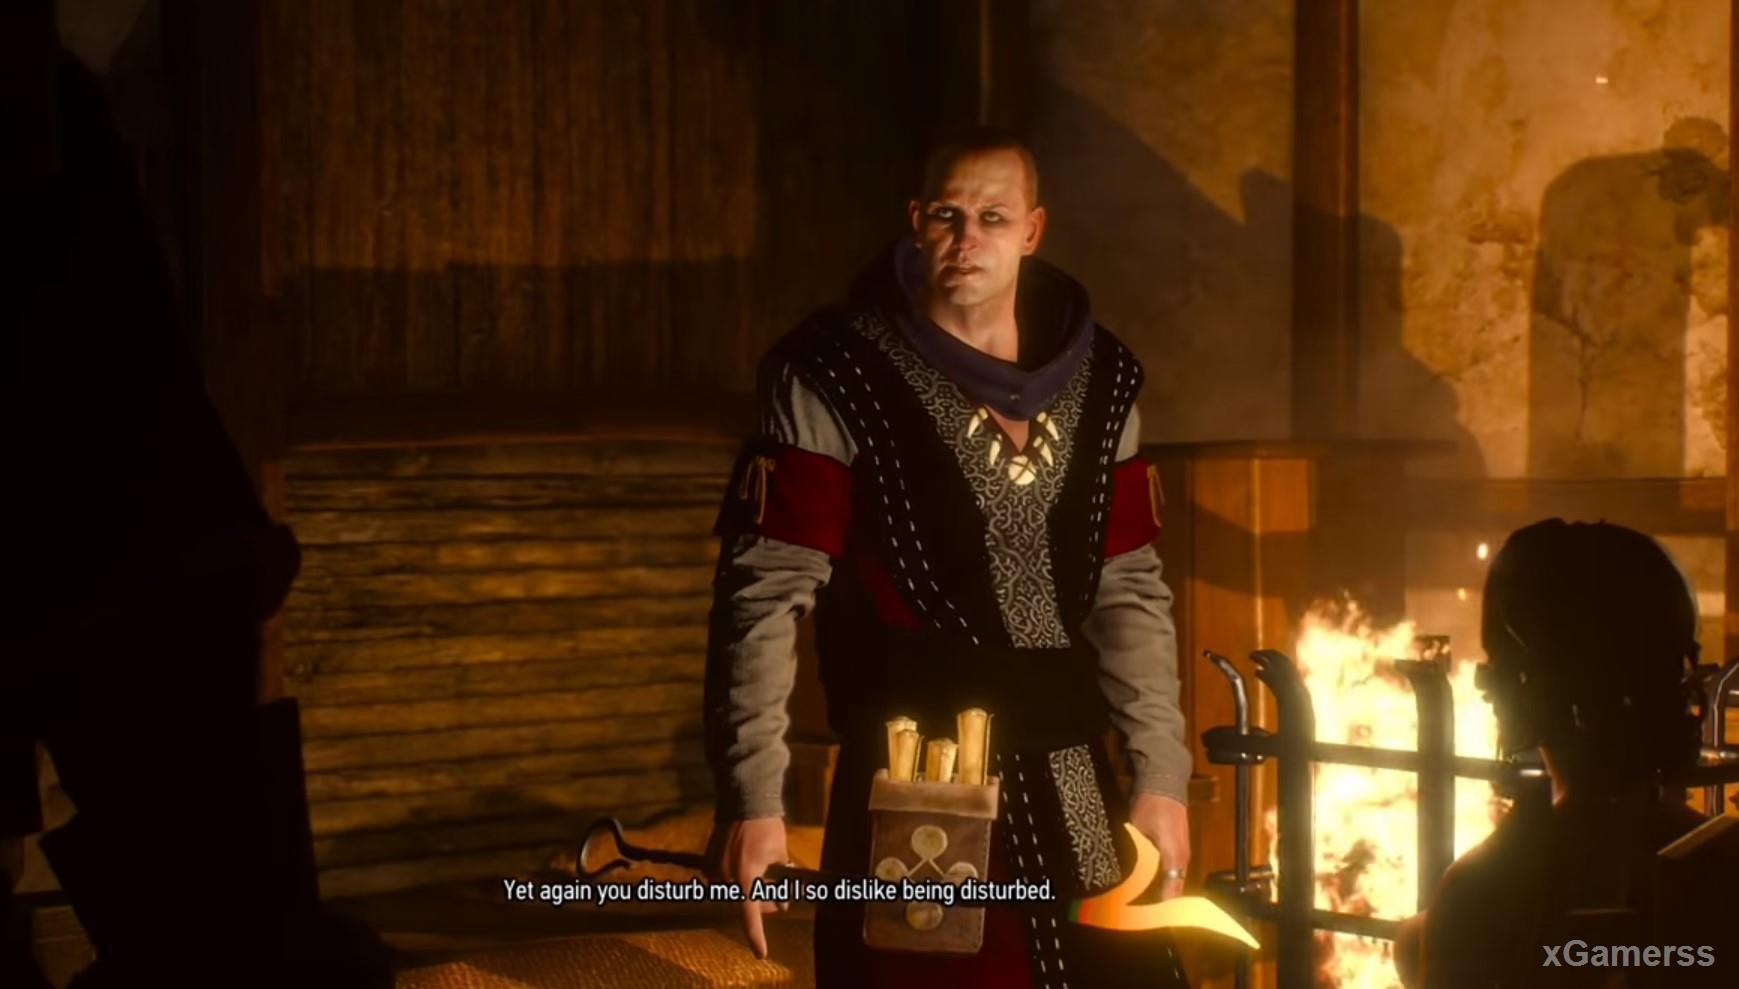 Geralt confronts the priest Pastodi with a red-hot poker